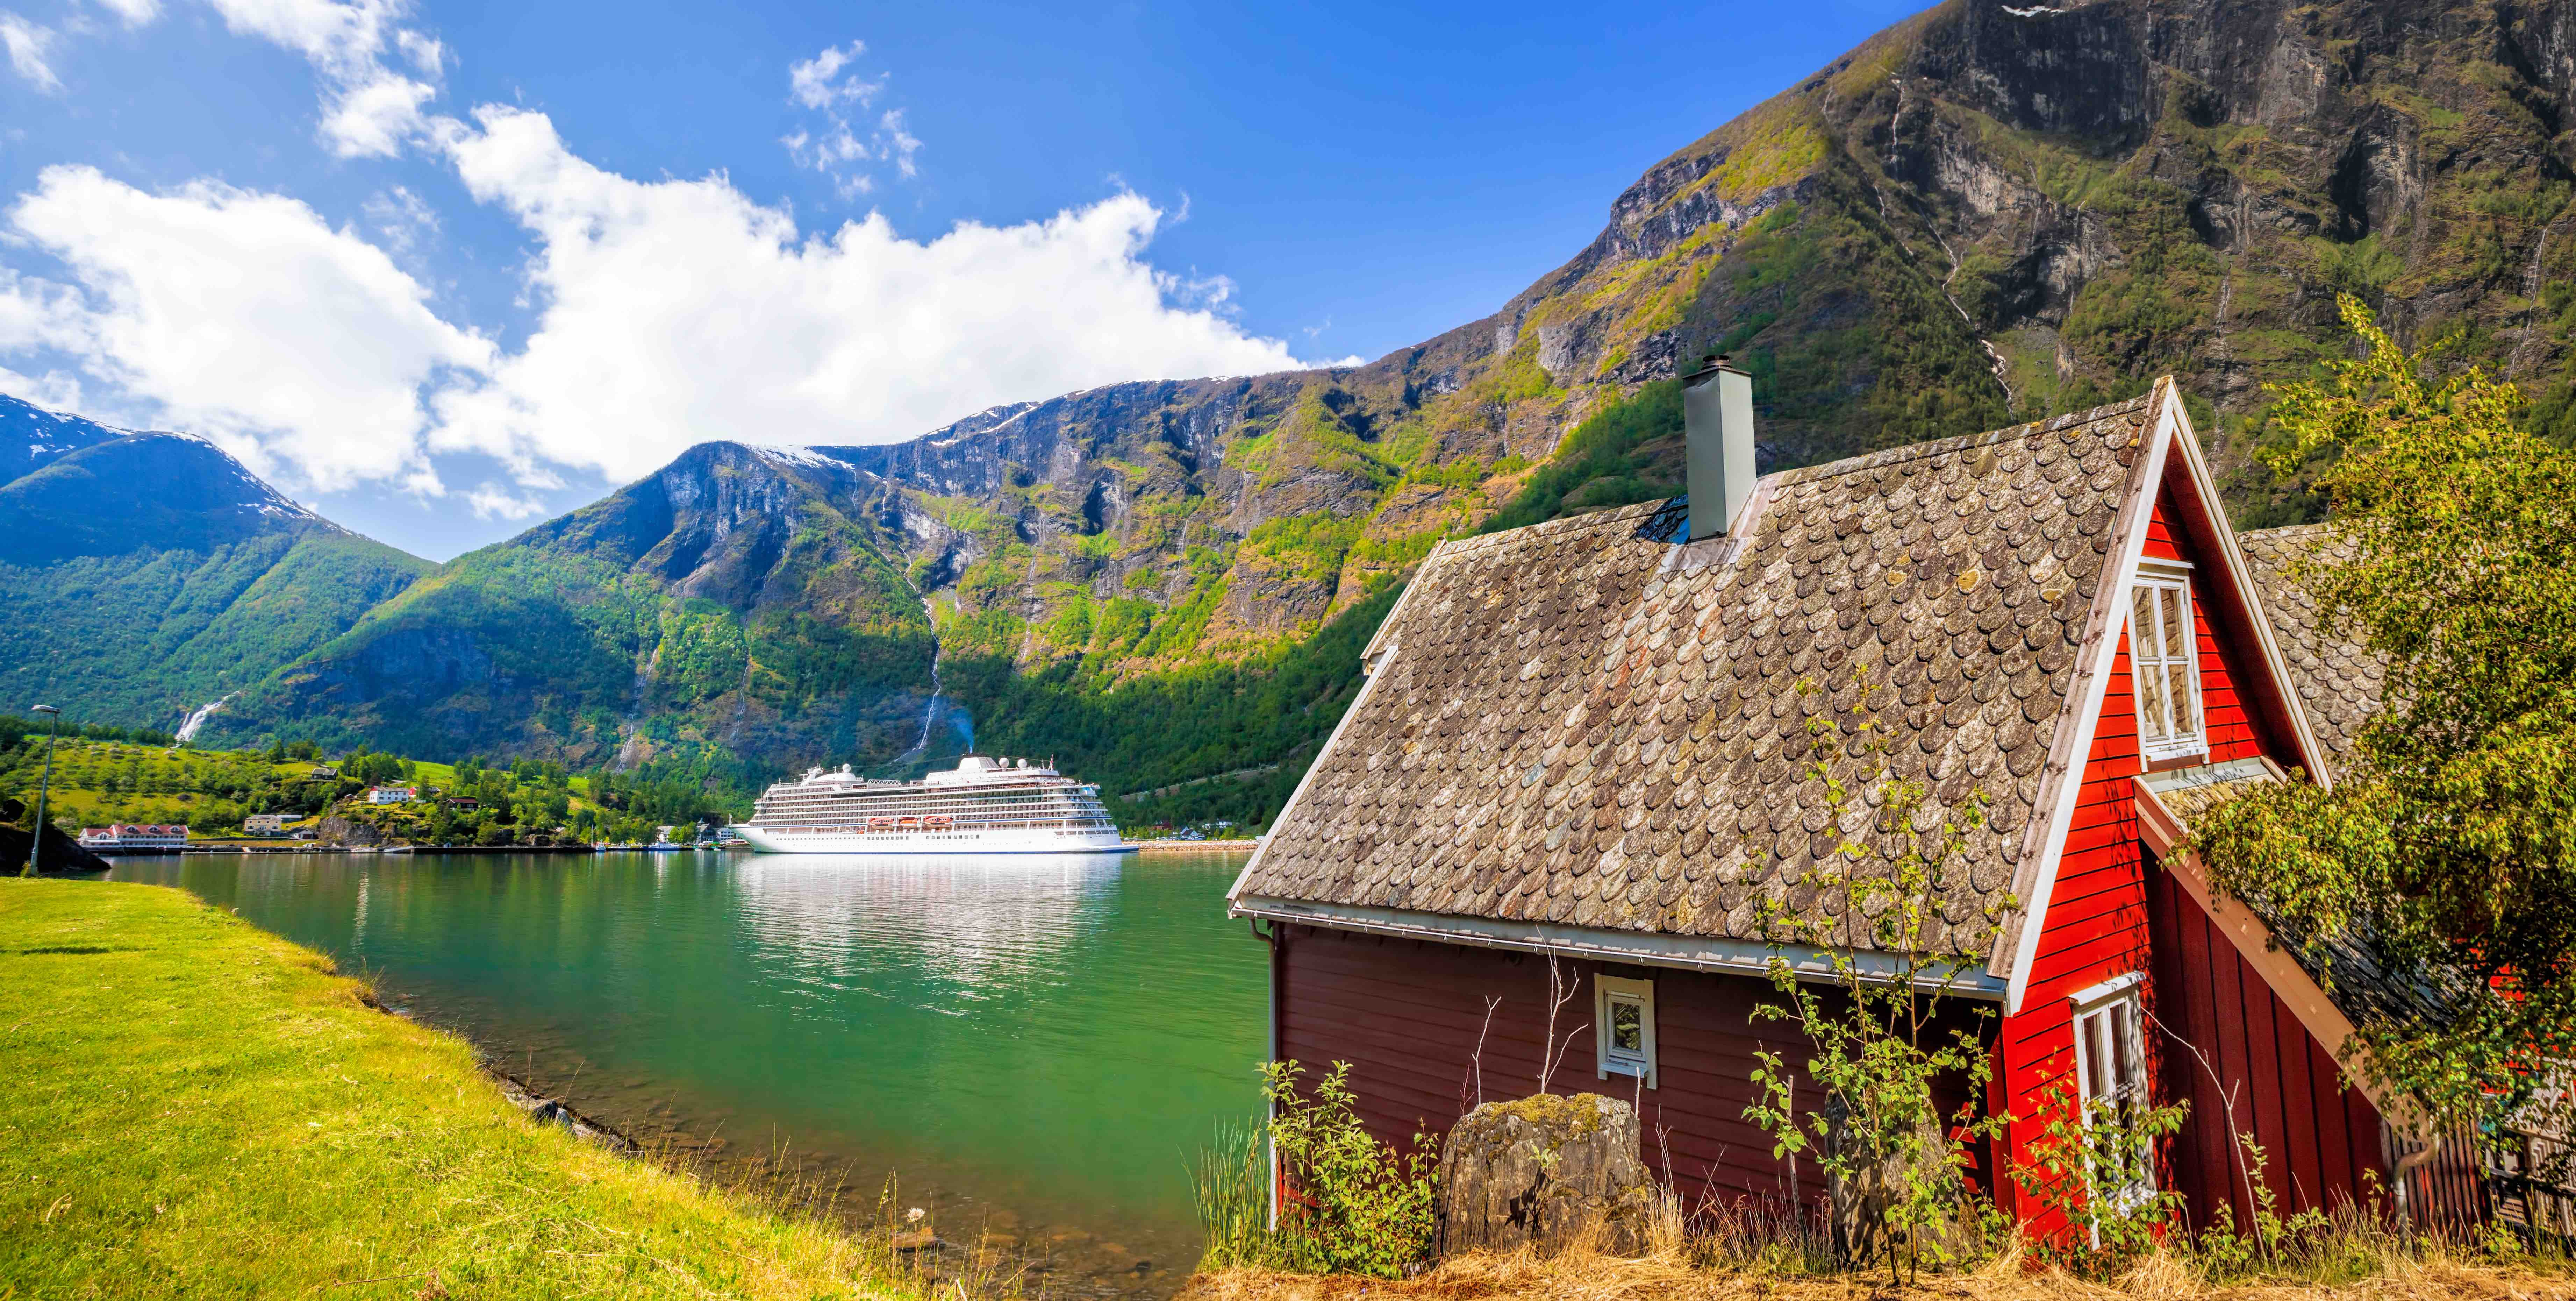 A cruise ship docks in the gorgeous town of Flam, Norway.